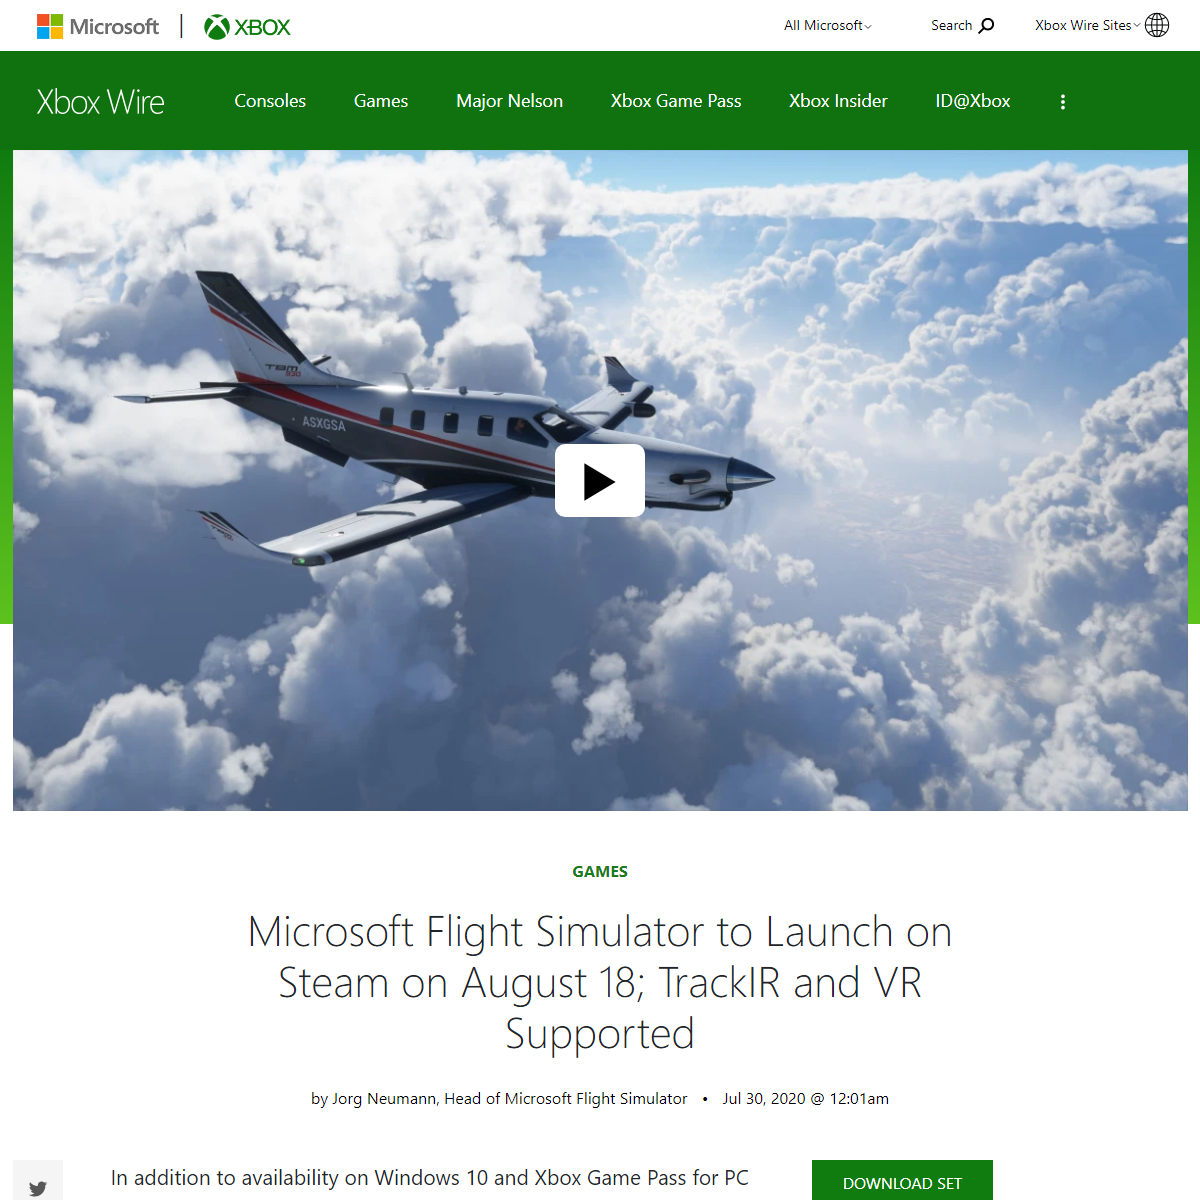 Microsoft Flight Simulator to Launch on Steam on August 18; TrackIR and VR Supported - Xbox Wire